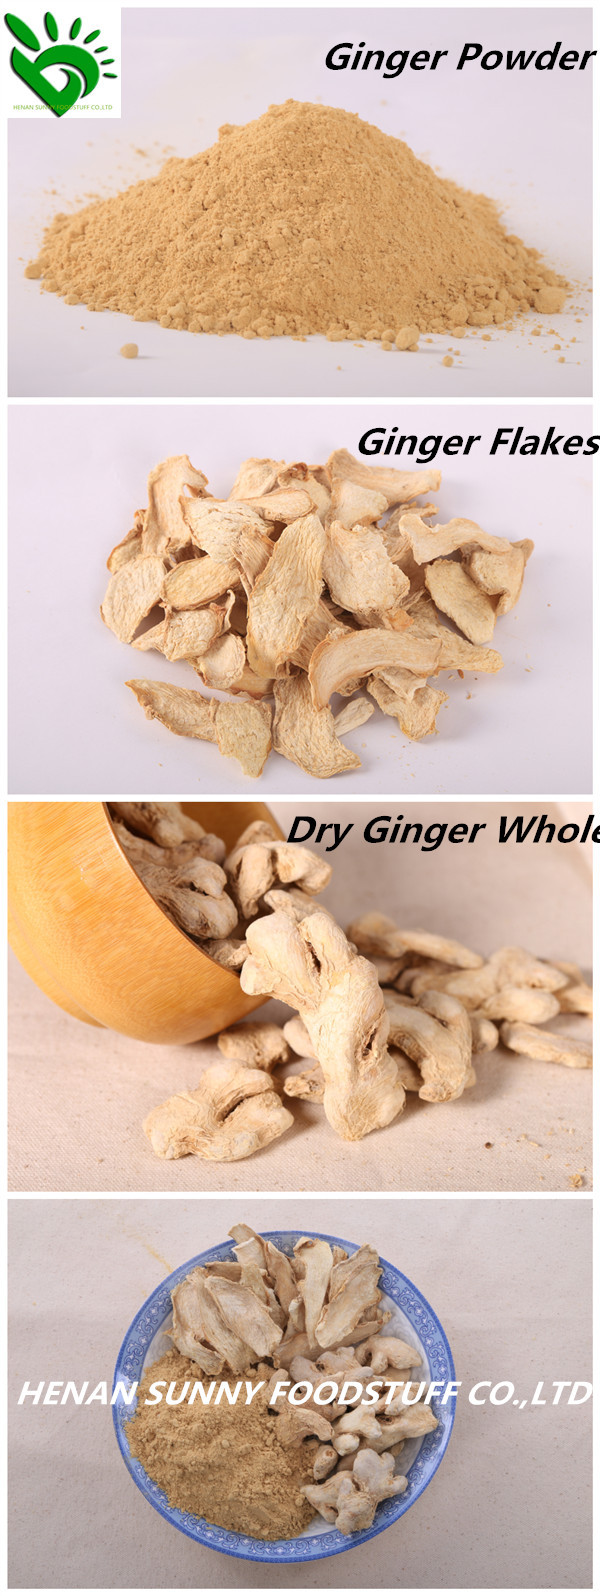 Professional Supplier Dry Ginger